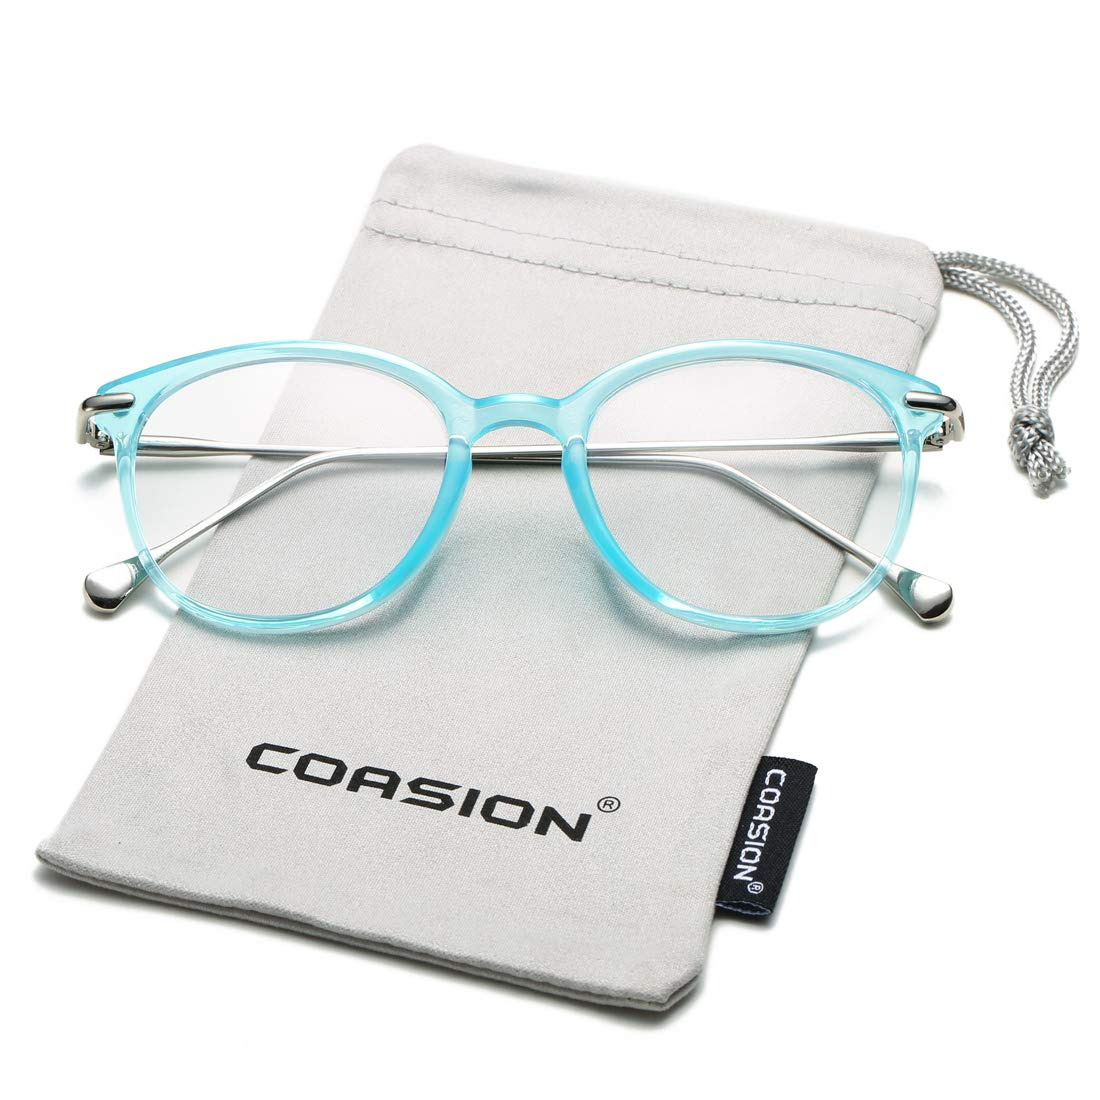 COASION Vintage Round Clear Glasses Non-Prescription Eyeglasses Frames for Women Men CA7013I